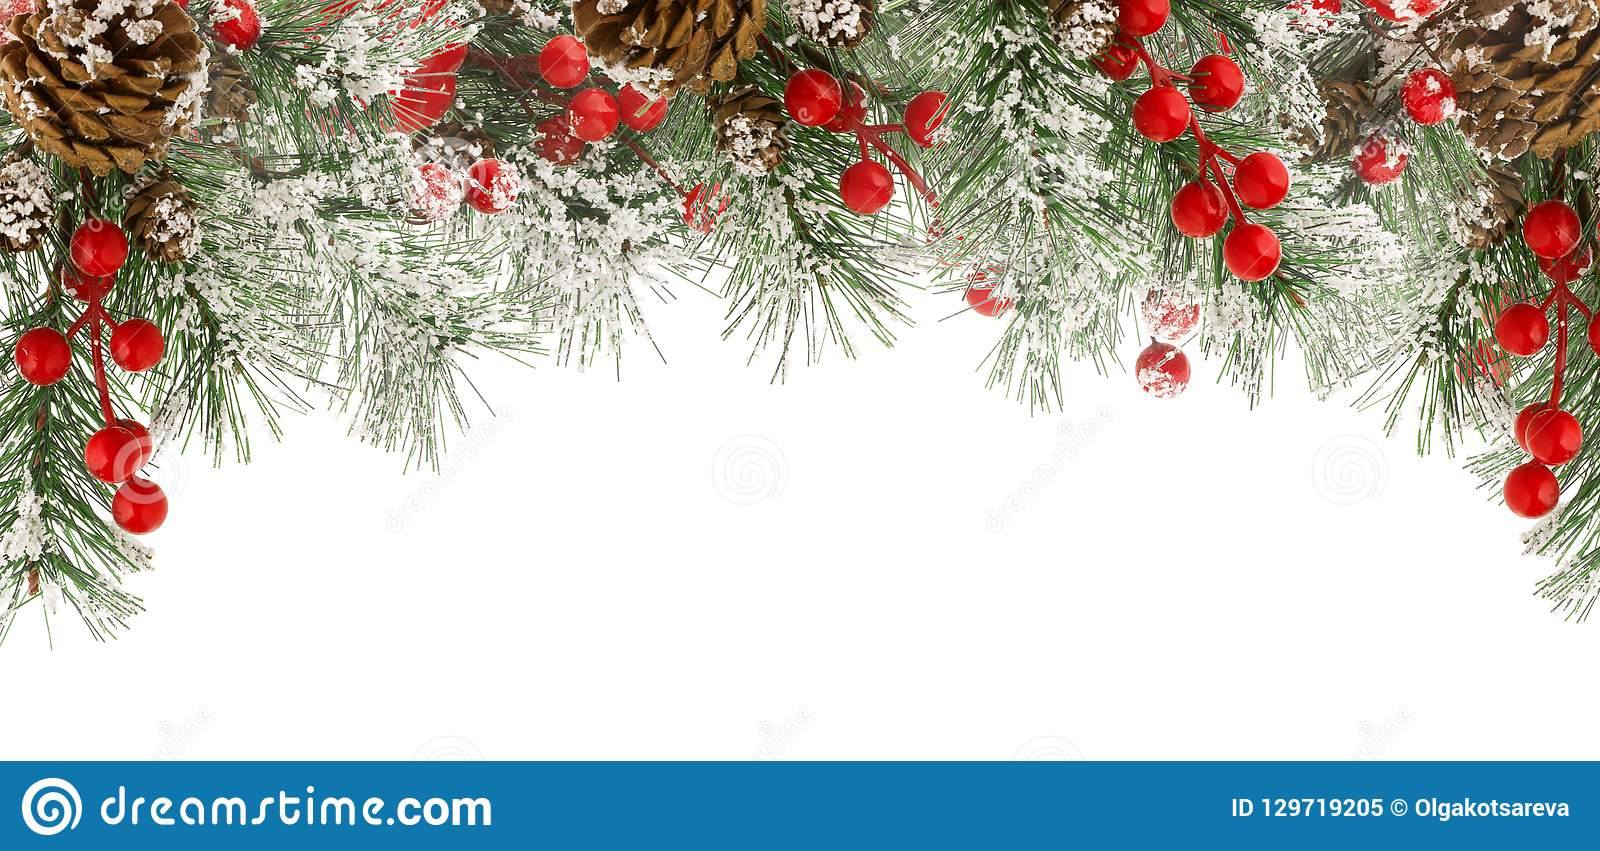 Christmas border of green fir branches with snow, red berries and cones isolated on white